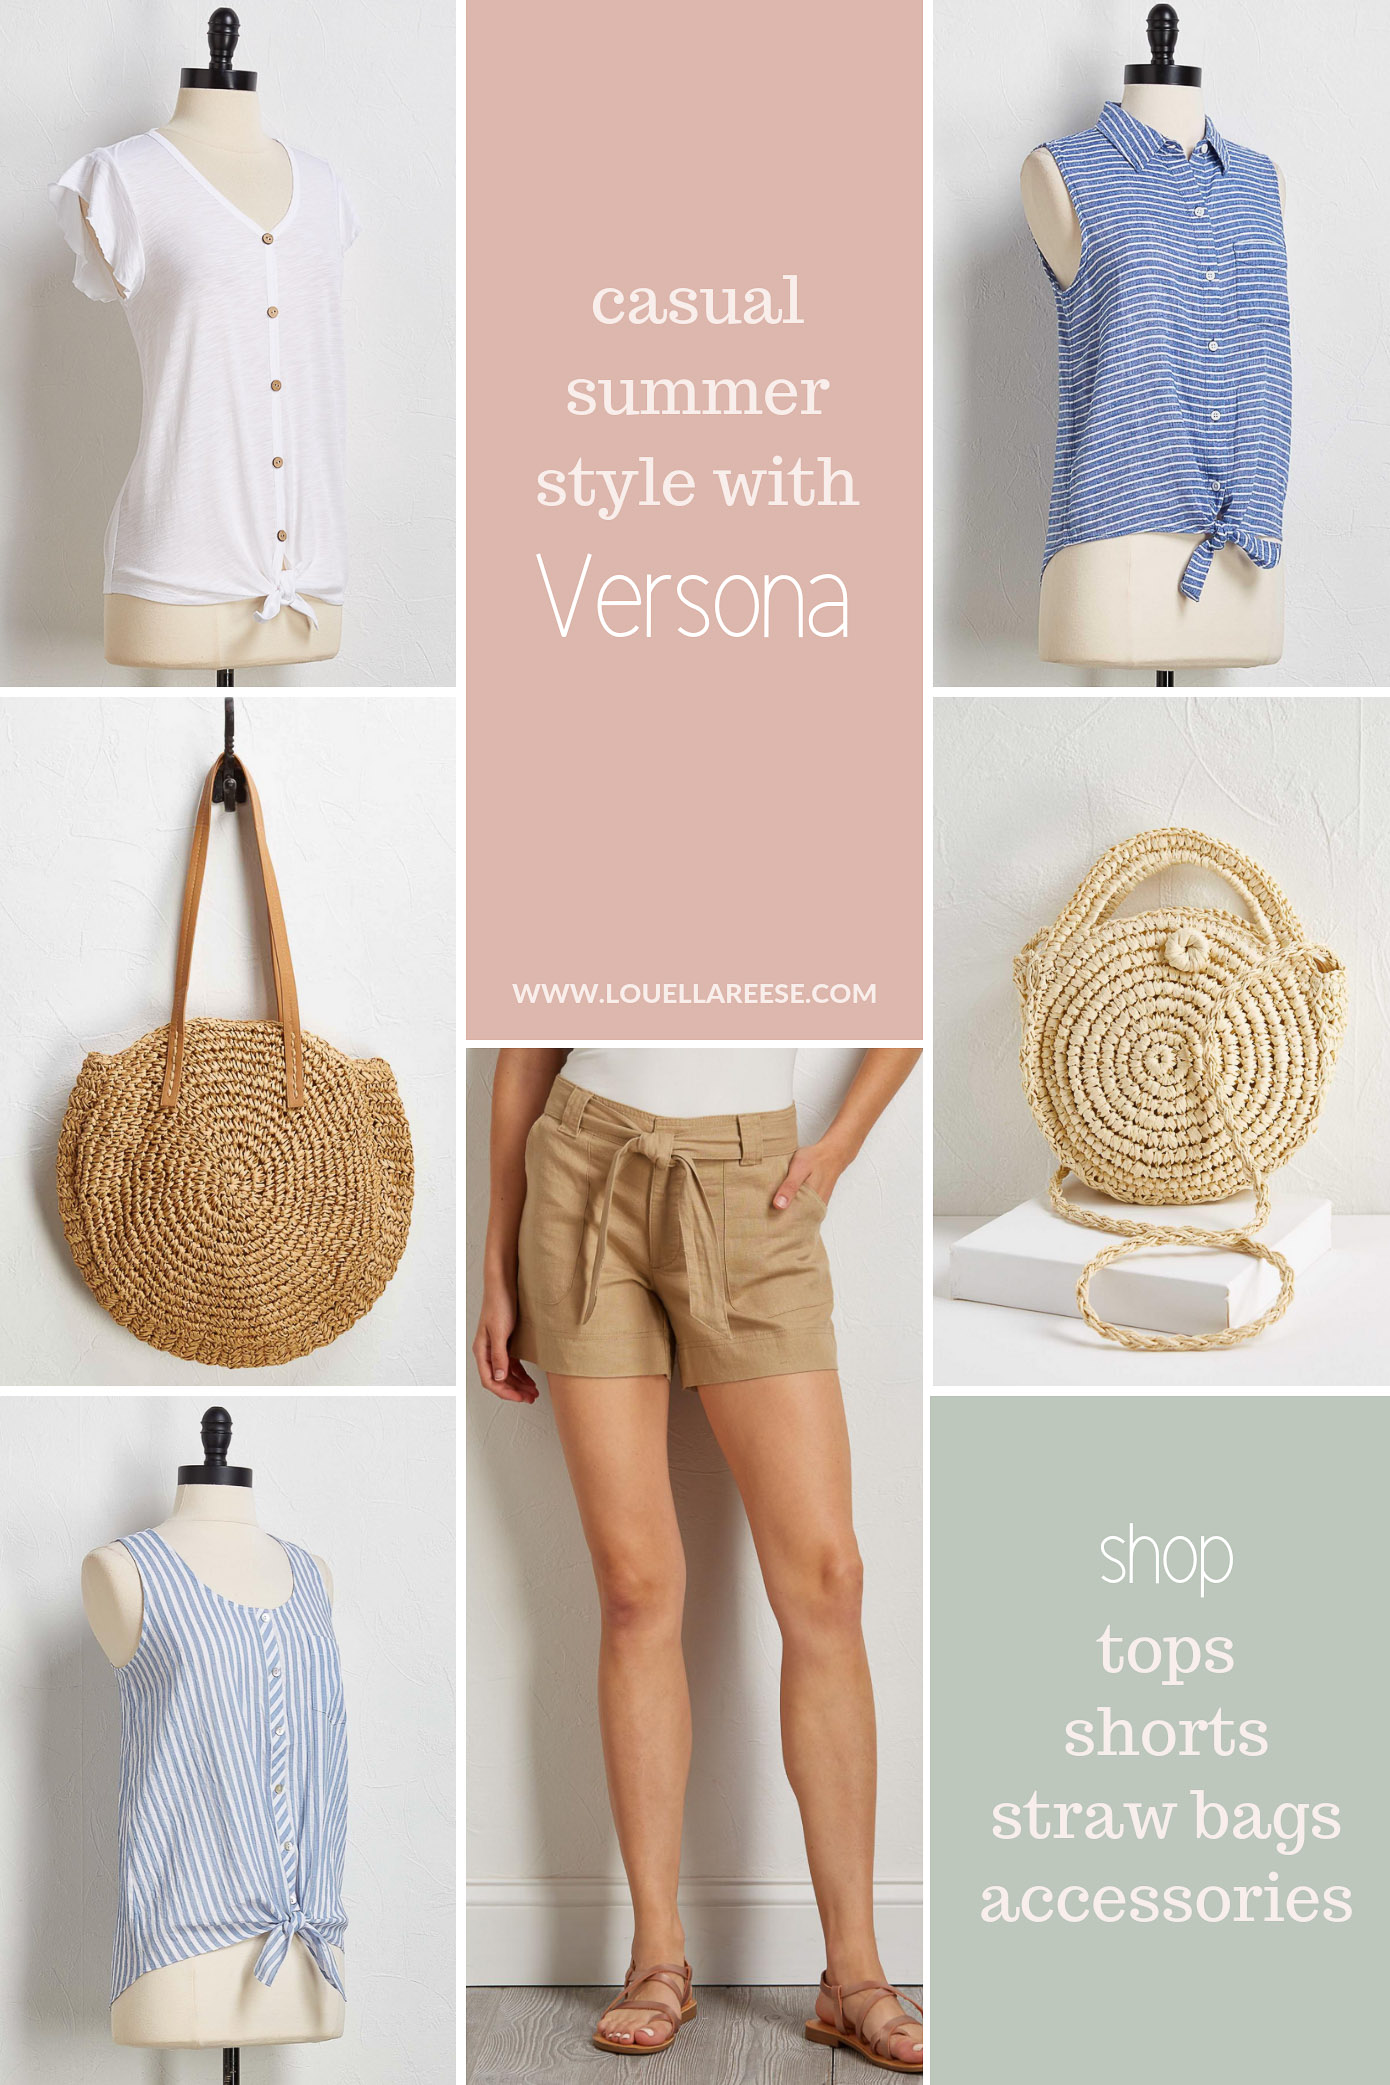 Affordable Casual Summer Style | Louella Reese